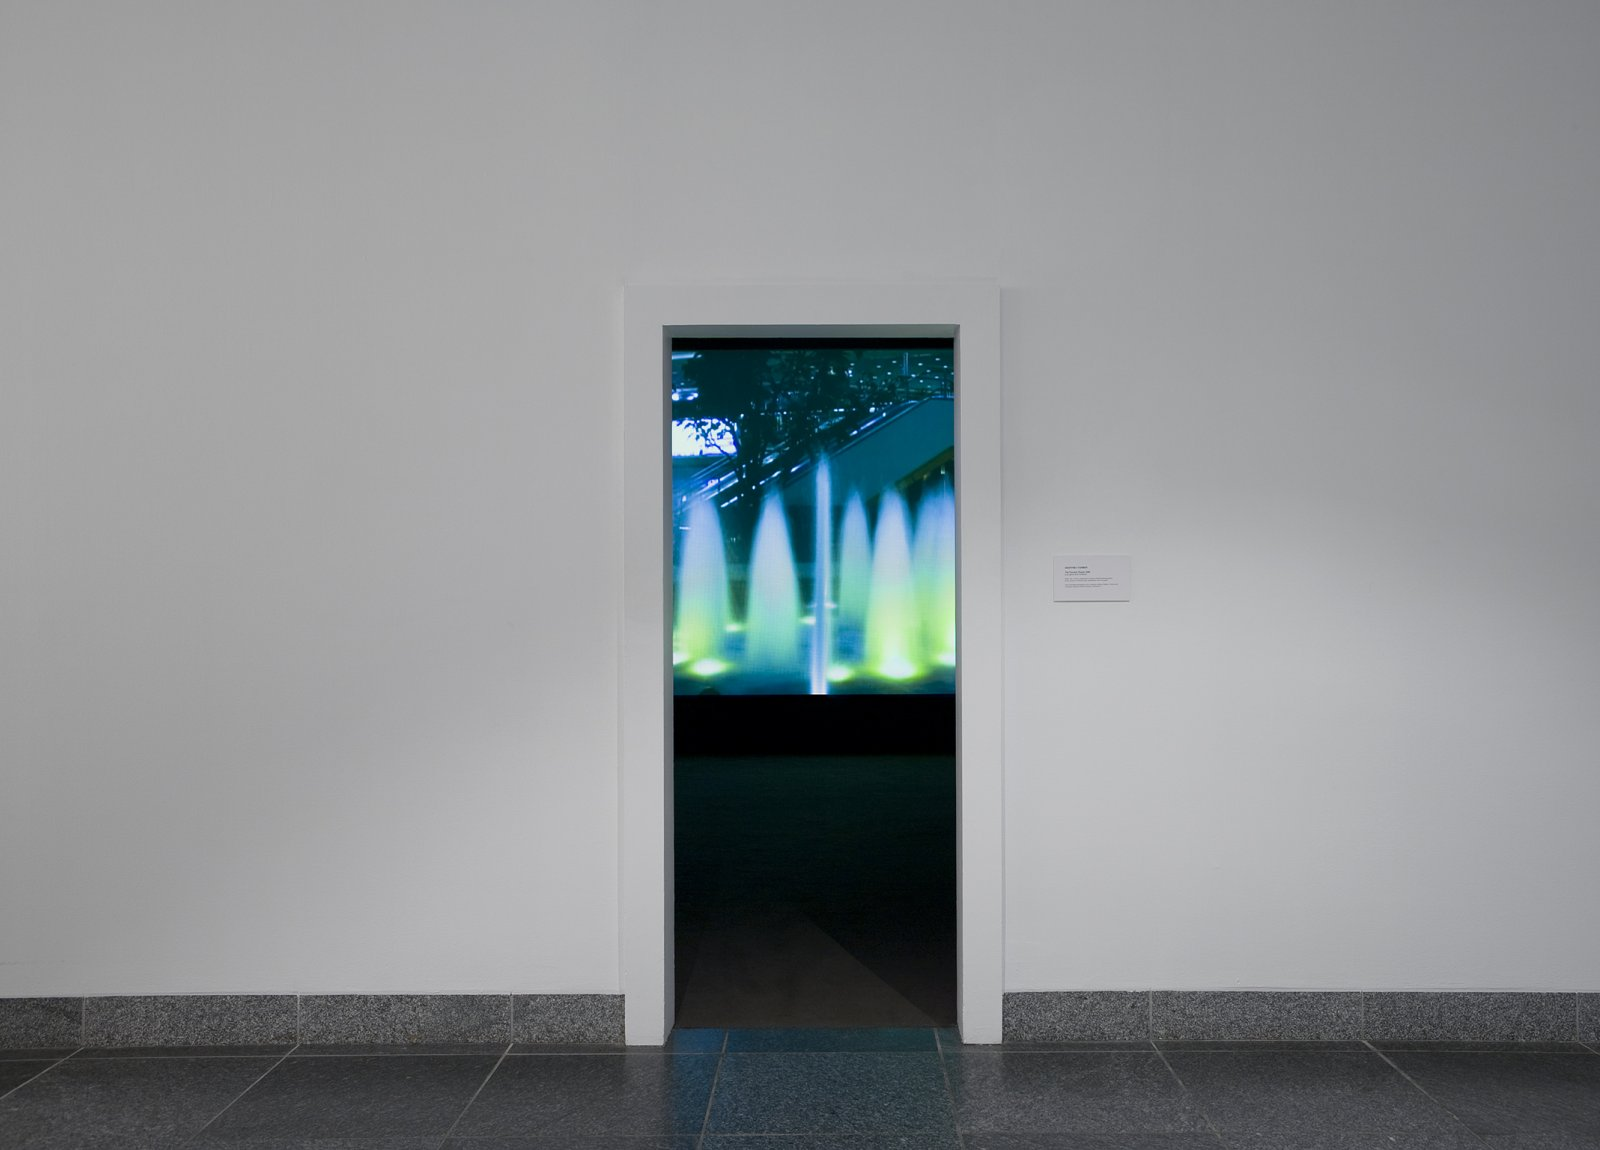 Geoffrey Farmer,The Fountain People, 2008, video projection, 10 minutes looped, handwritten text on paper, dimensions variable